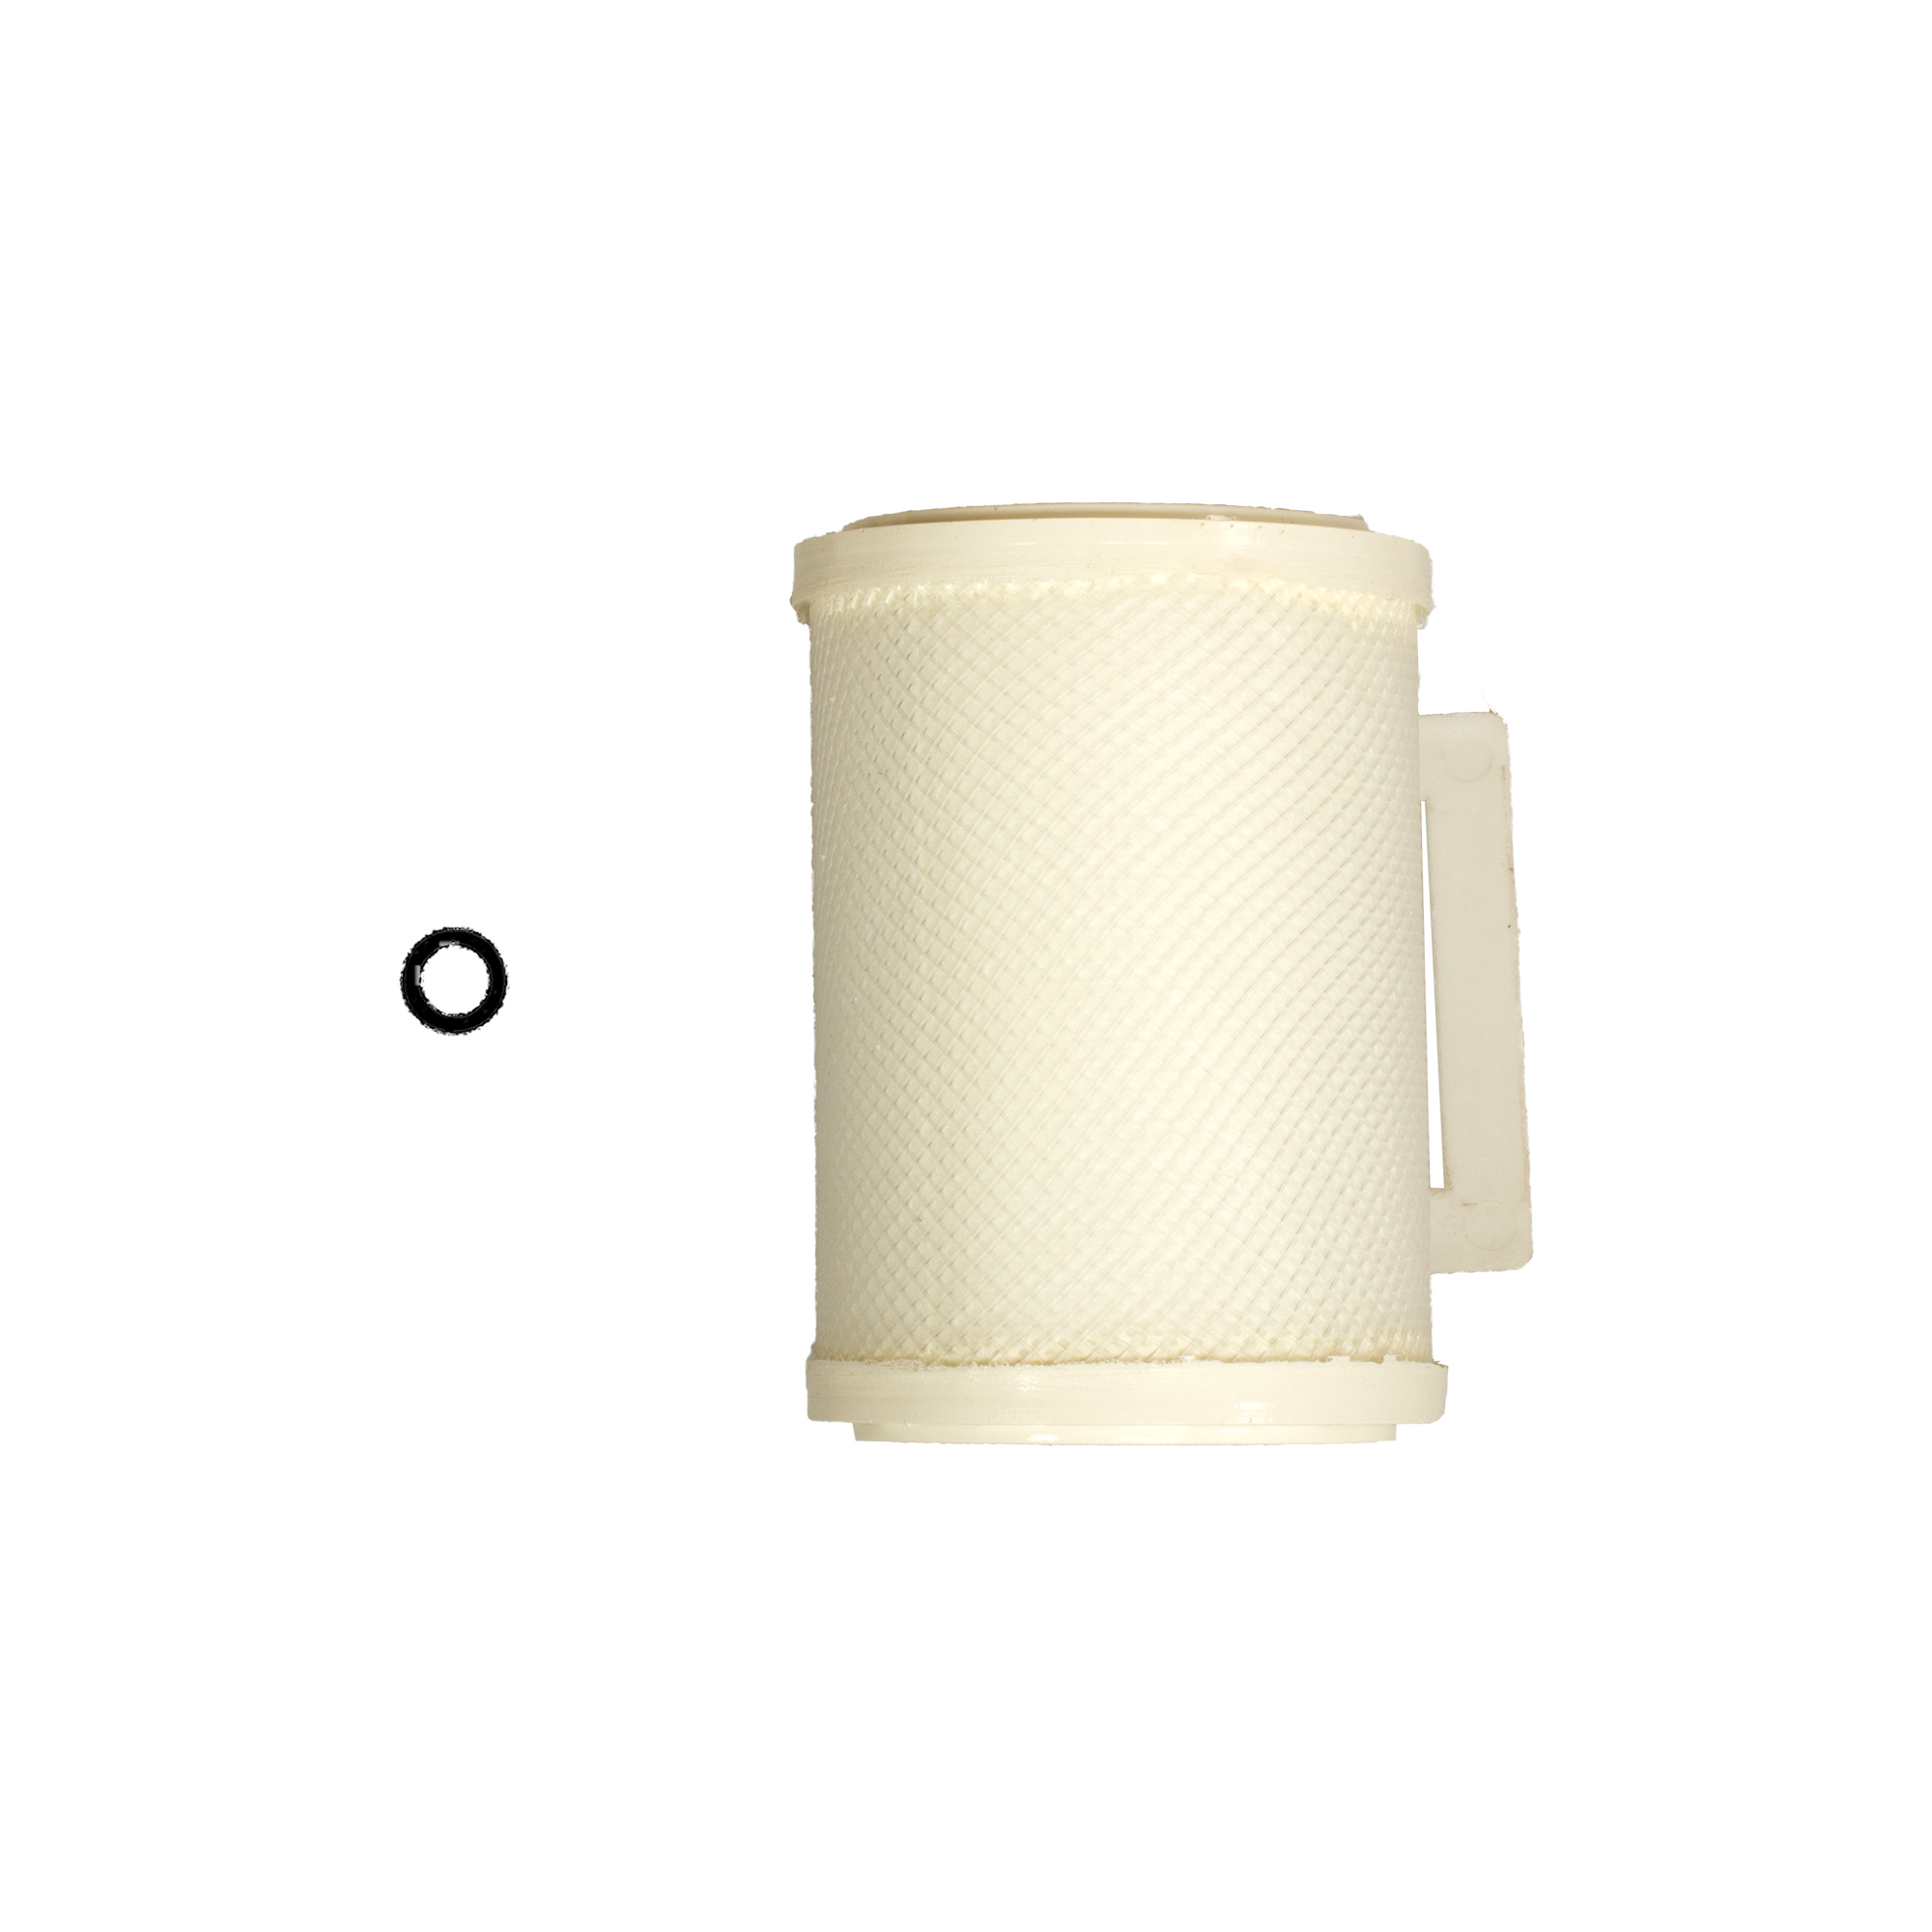 Model 900564 Replacement Filter Element for 9006